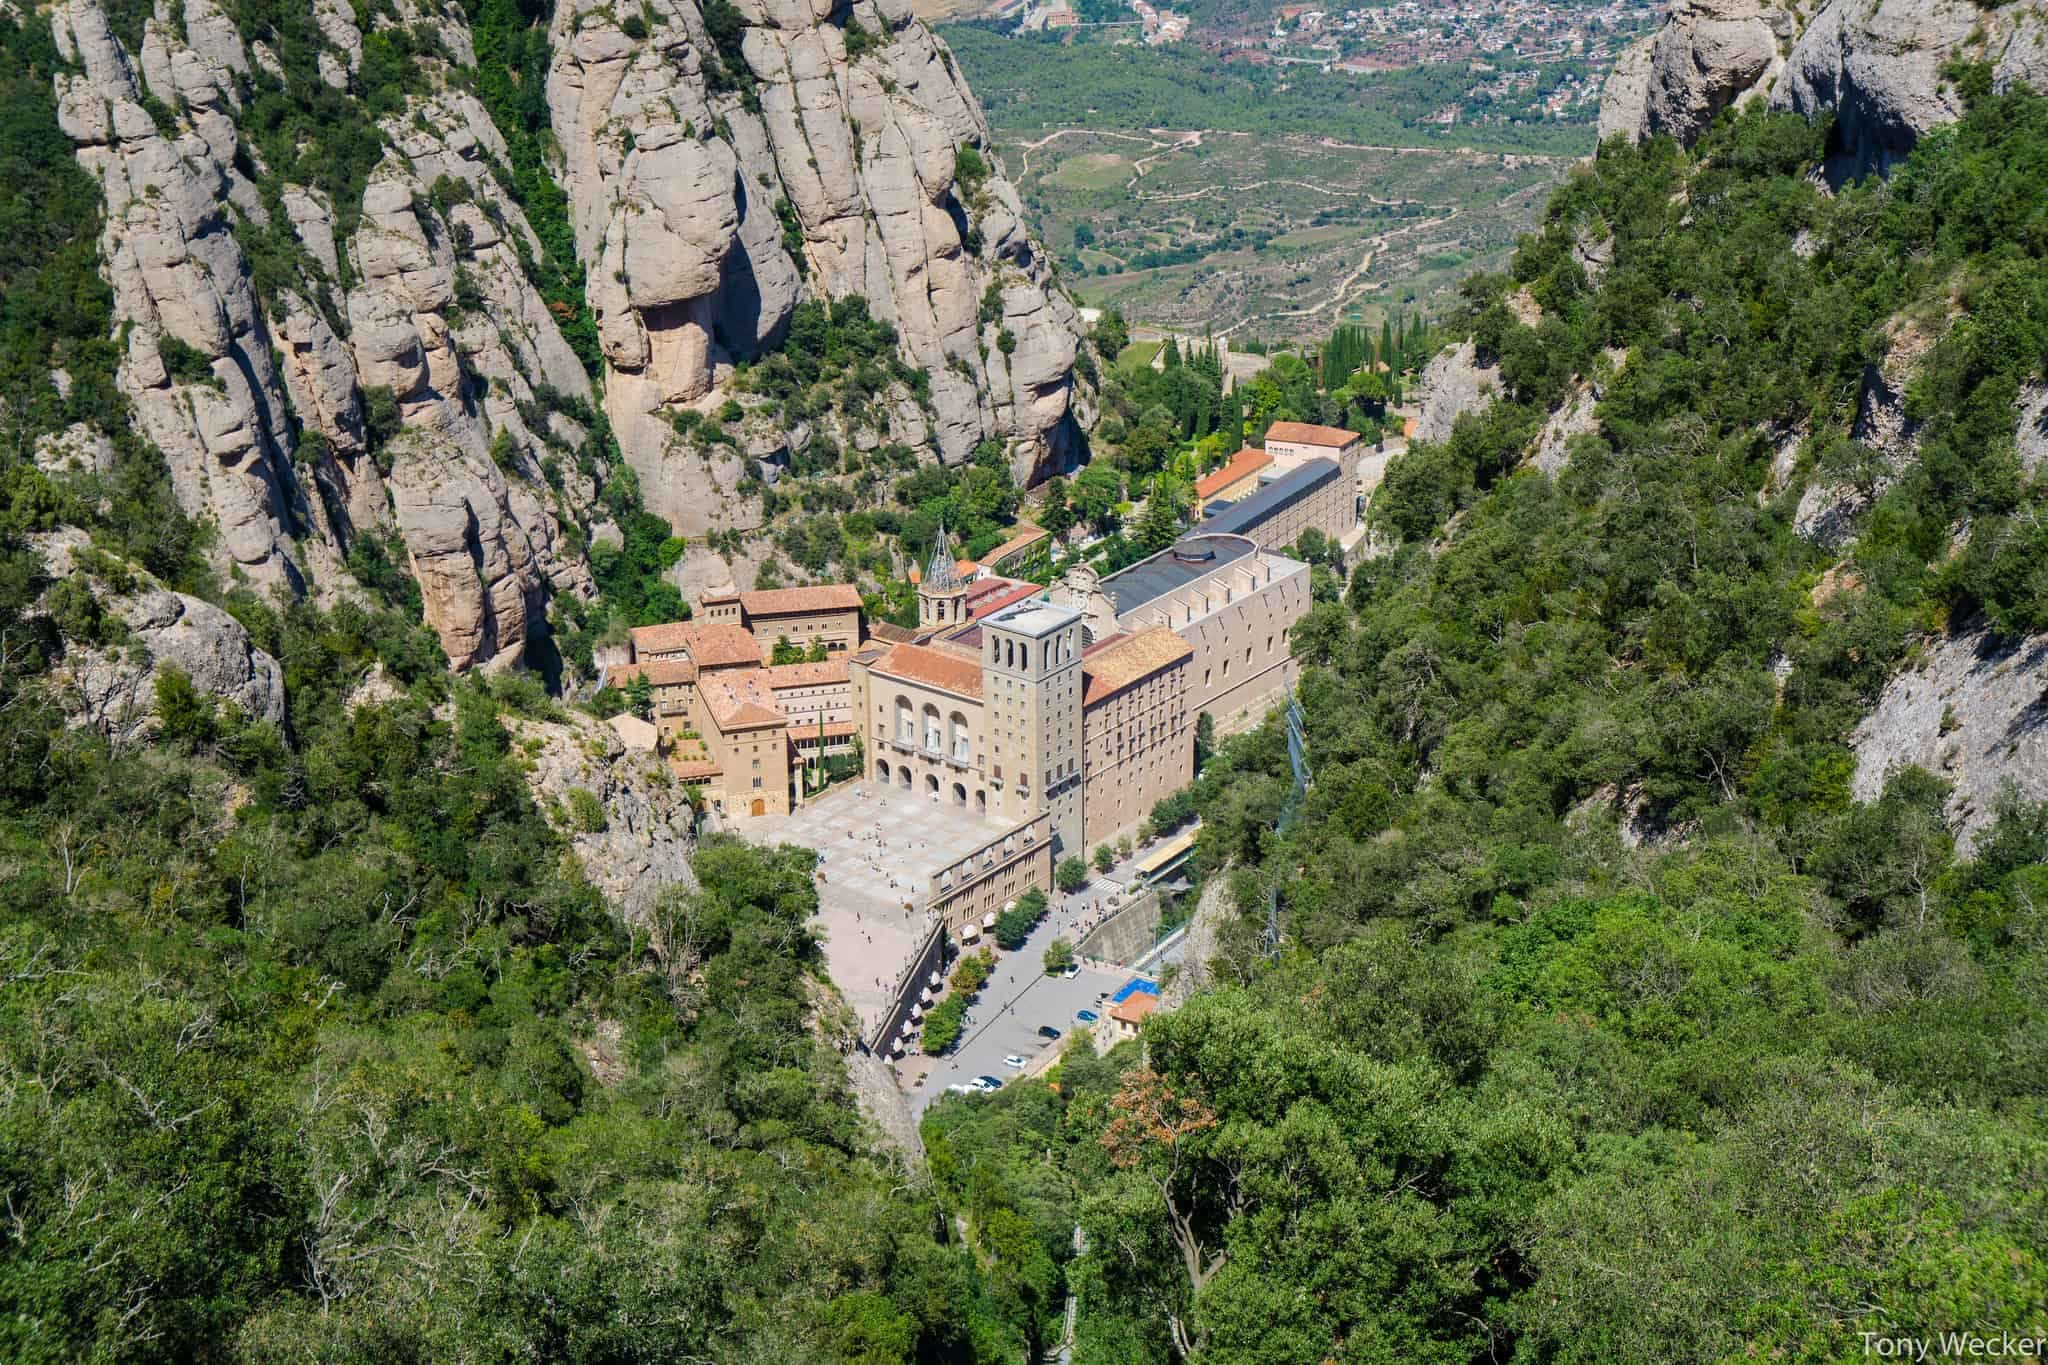 The view of Montserrat from Sant Join